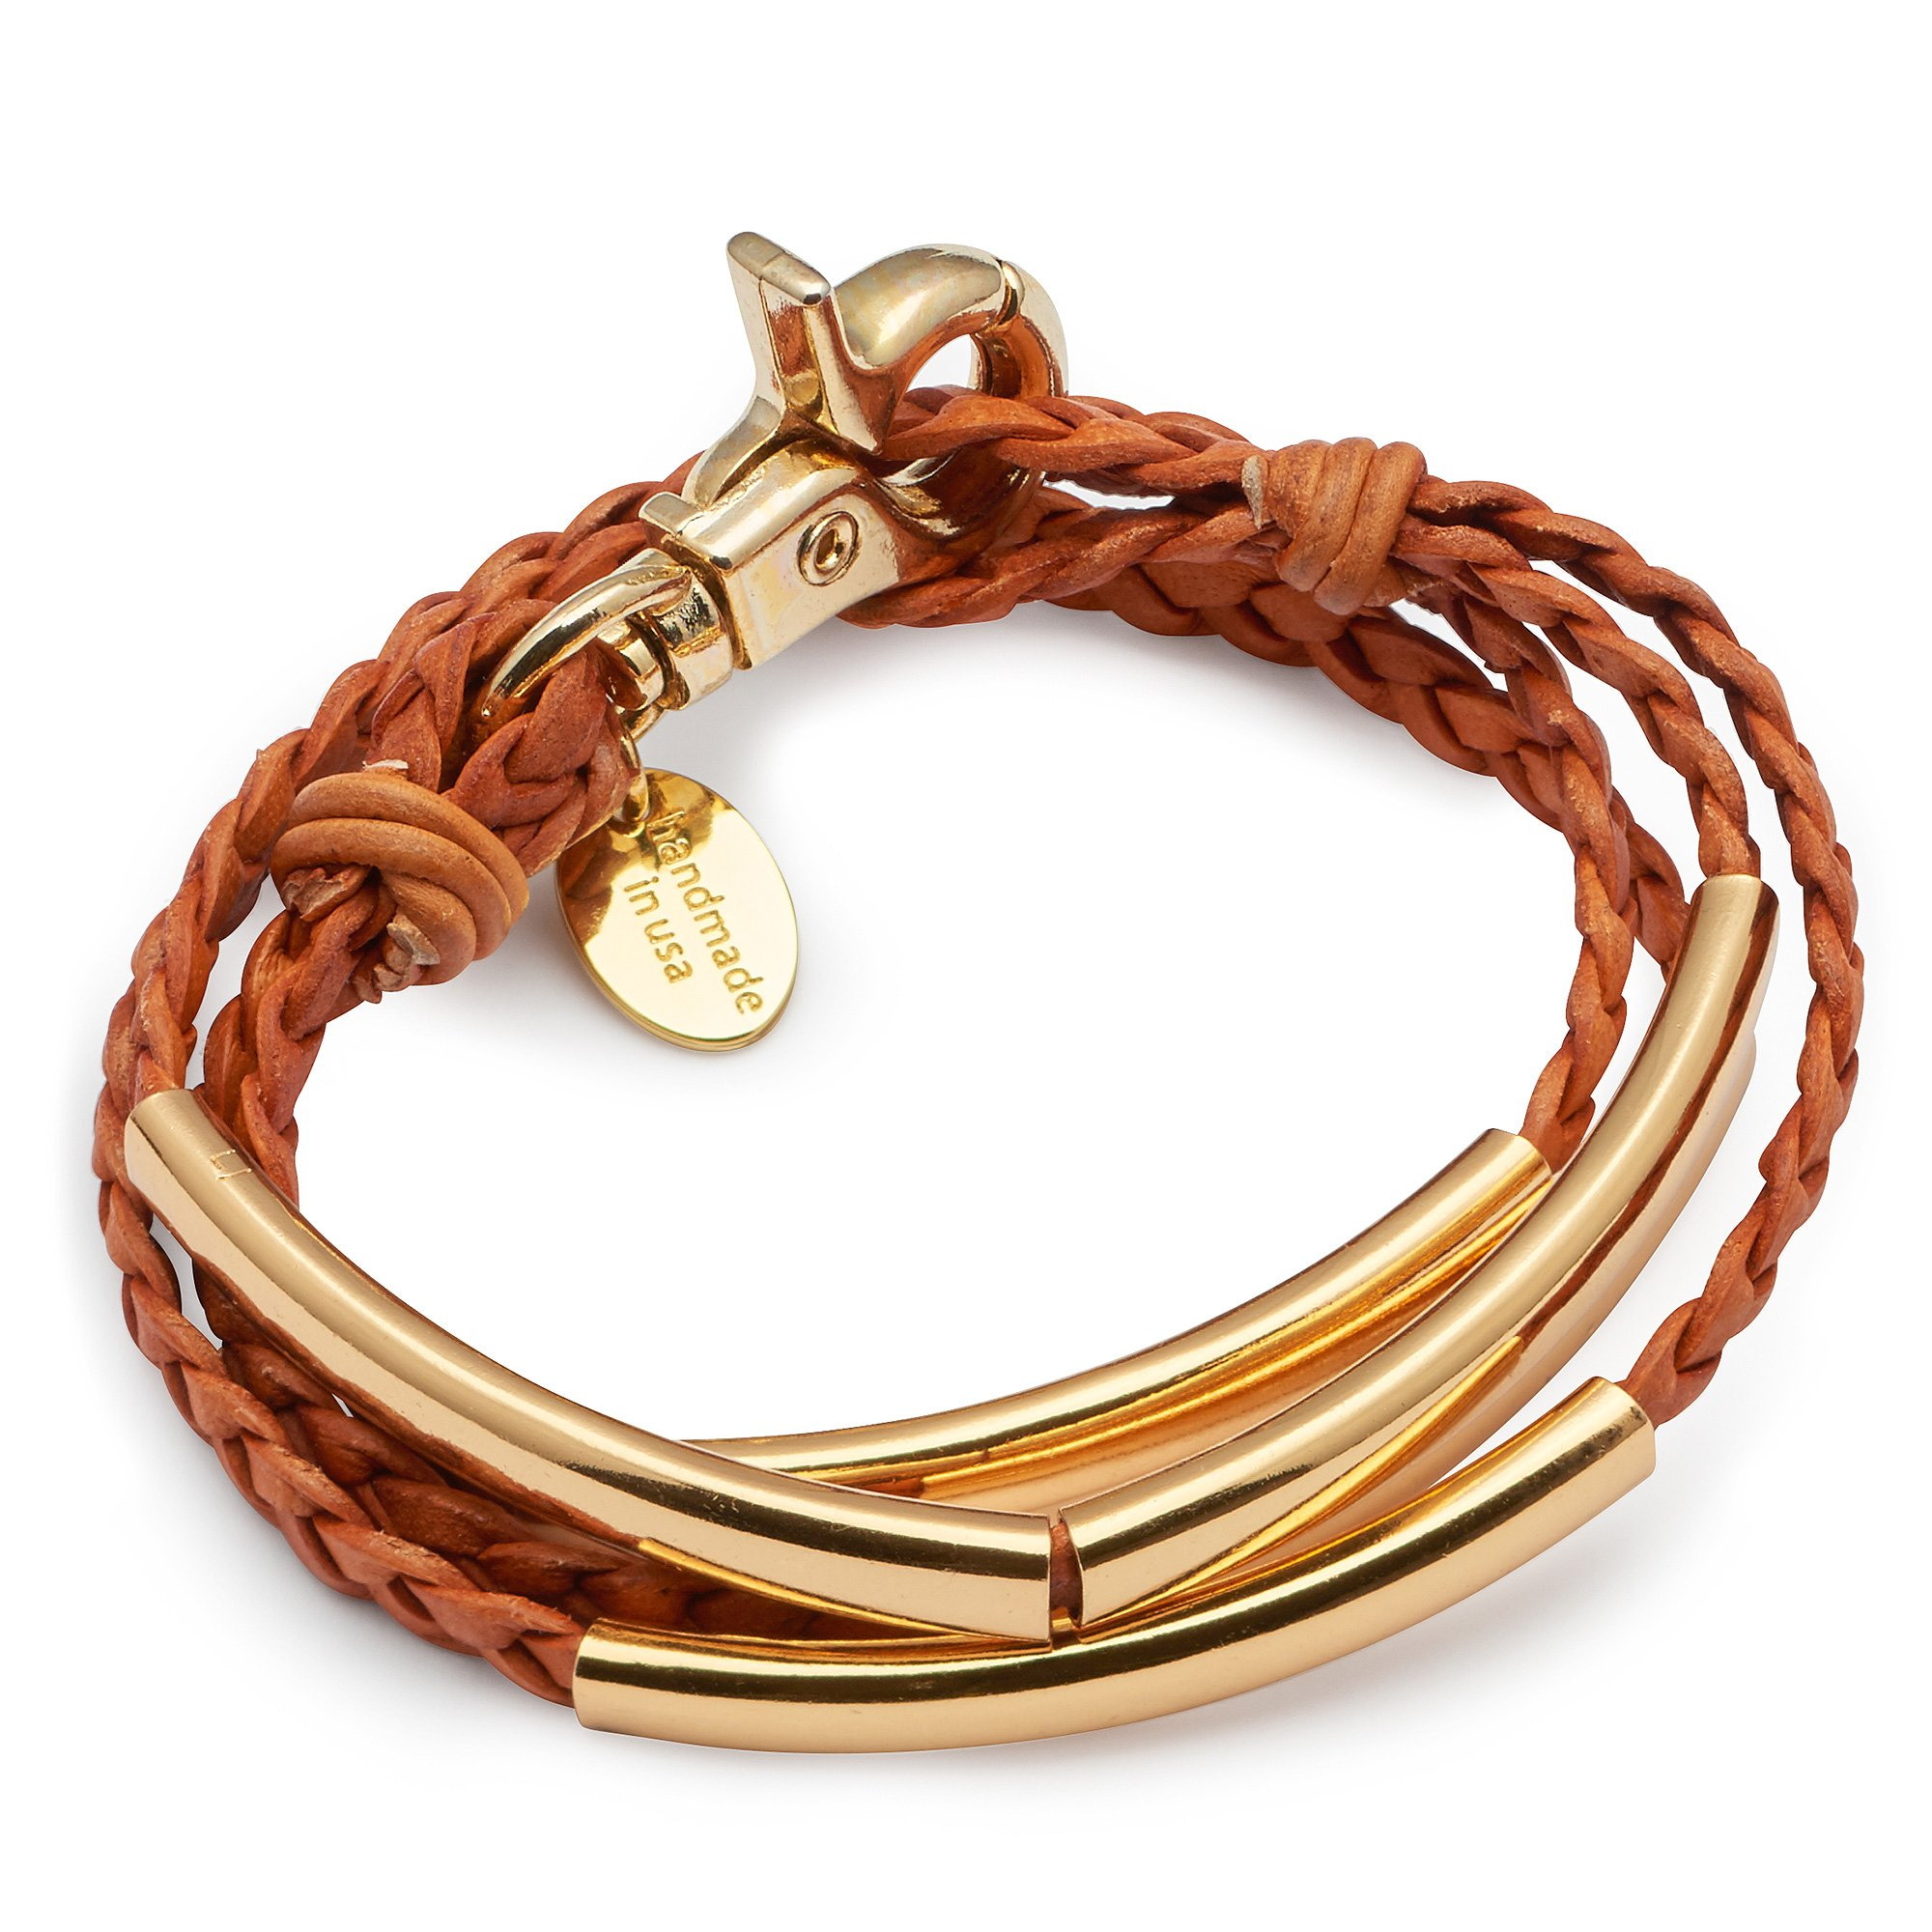 Lizzy James Mini Addison Wrap Bracelet Goldplate in Natural Orange Braided Leather Size Large